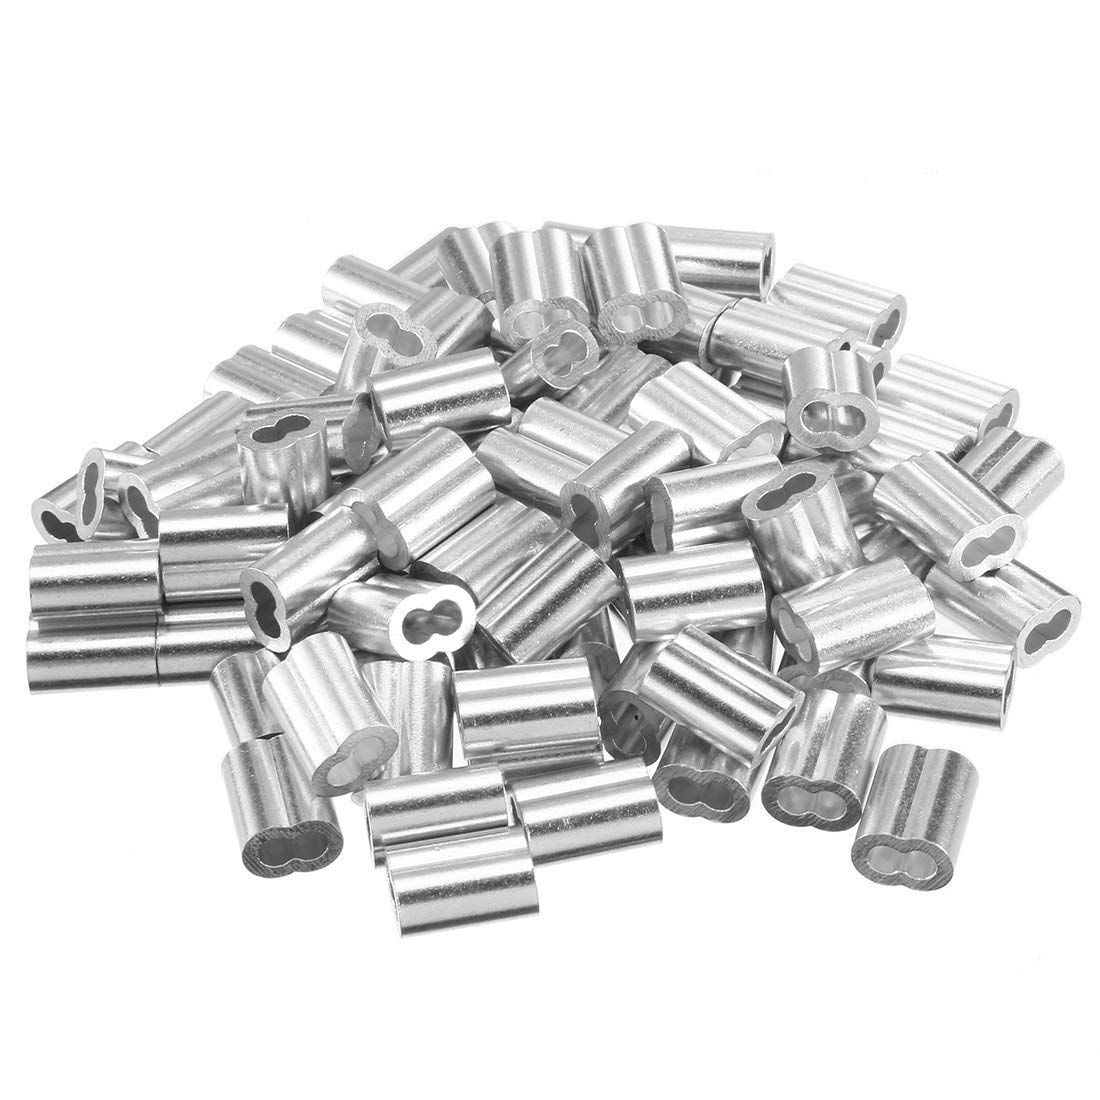 100pcs 5/64 Inch (2mm) Diameter Wire Rope Aluminum Alloy Sleeves Clip Fittings Loop Cable Crimps Ferrule Stop Wire Rope Cable